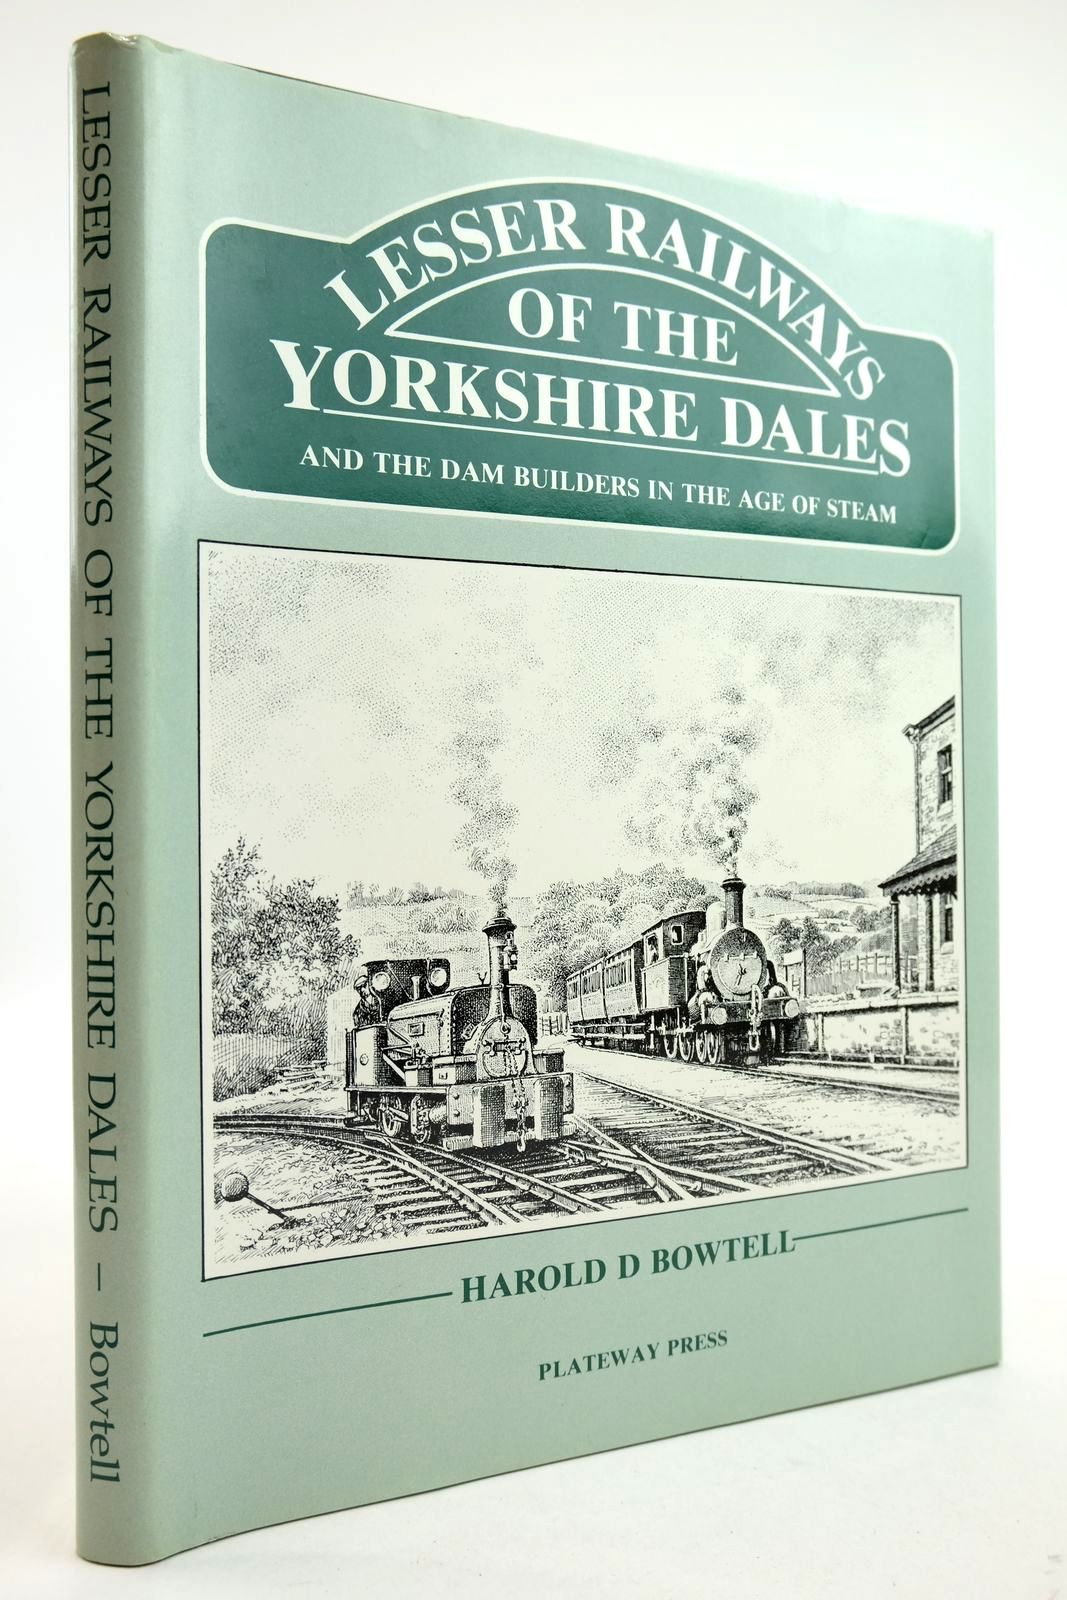 Photo of LESSER RAILWAYS OF THE YORKSHIRE DALES written by Bowtell, Harold D. published by Plateway Press (STOCK CODE: 2133109)  for sale by Stella & Rose's Books